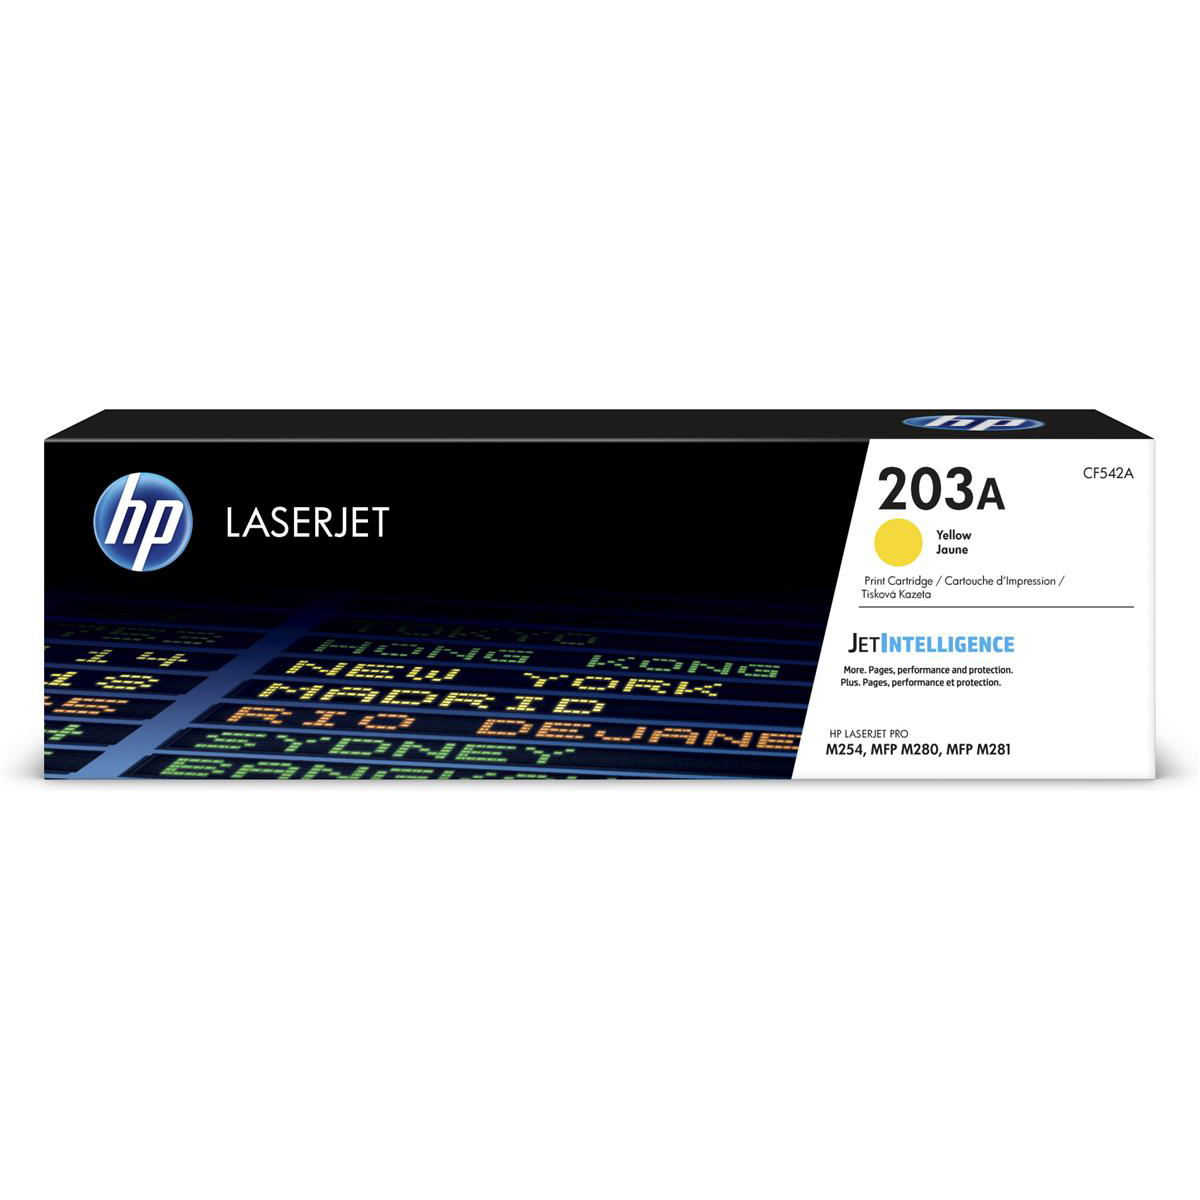 HP 203A LaserJet Toner Cartridge Page Life 1300pp Yellow Ref CF542A